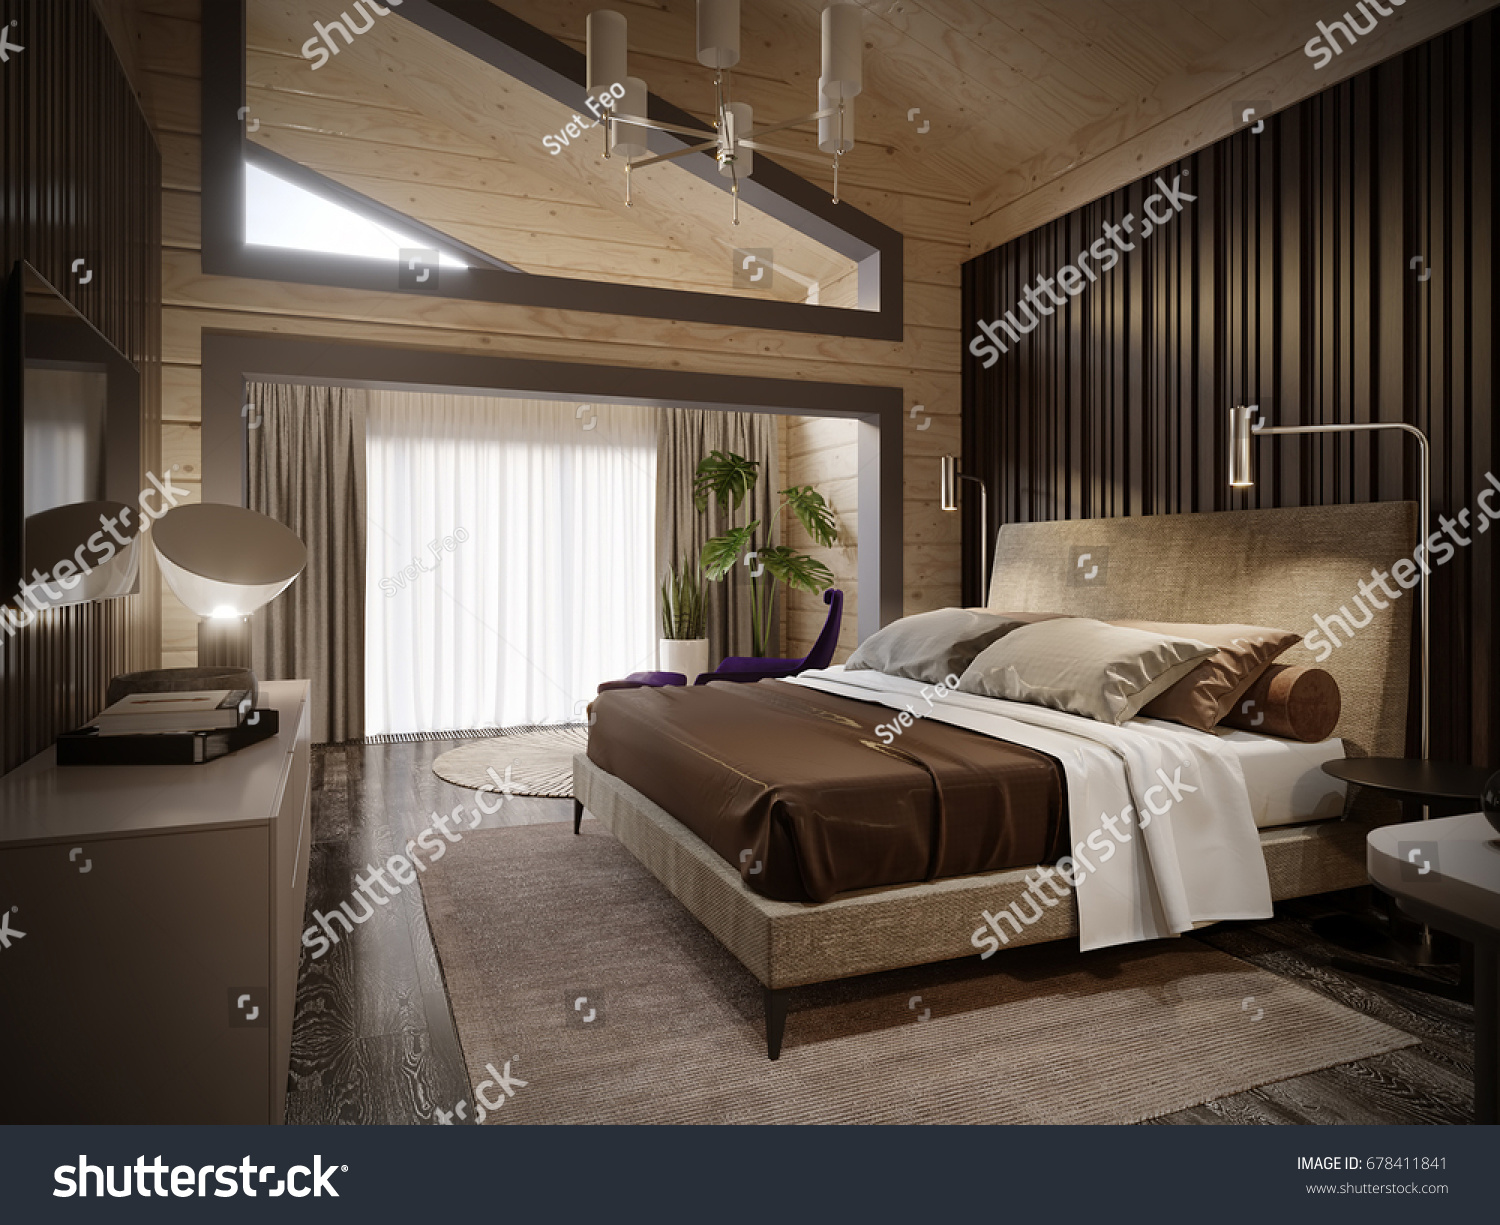 Urban Contemporary Modern Classic Traditional Hotel Bedroom Interior Design  in wooden house with blockhouse walls. Urban Contemporary Modern Classic Traditional Hotel Stock